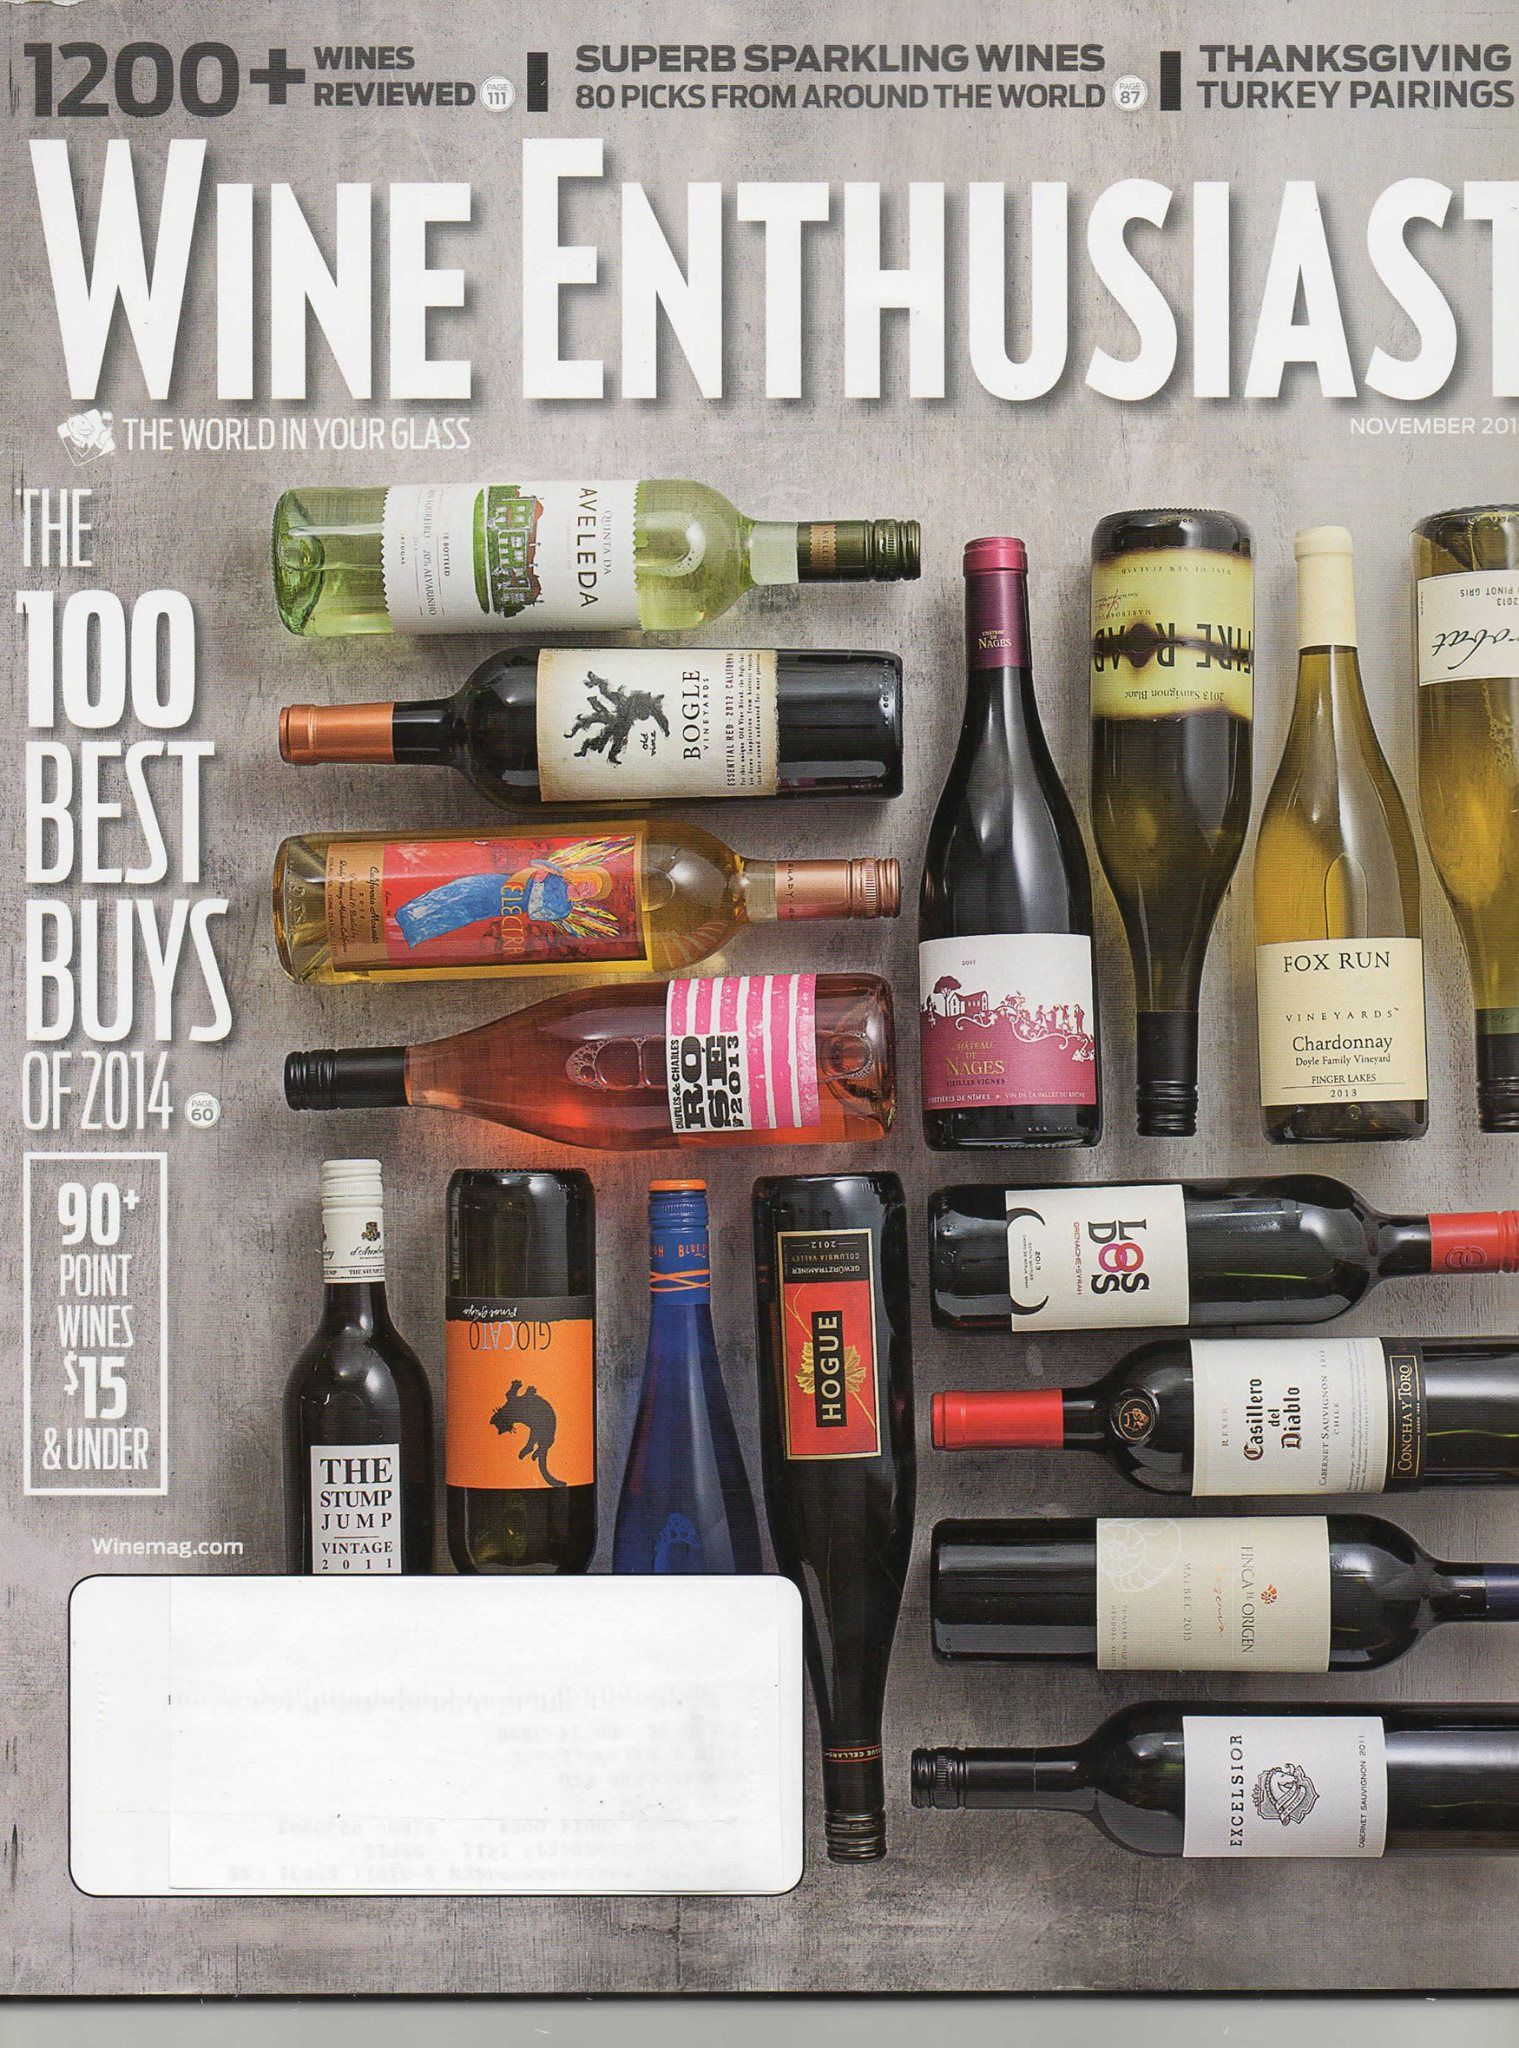 Fire Road Sauvignon Blanc featured on the cover of Wine